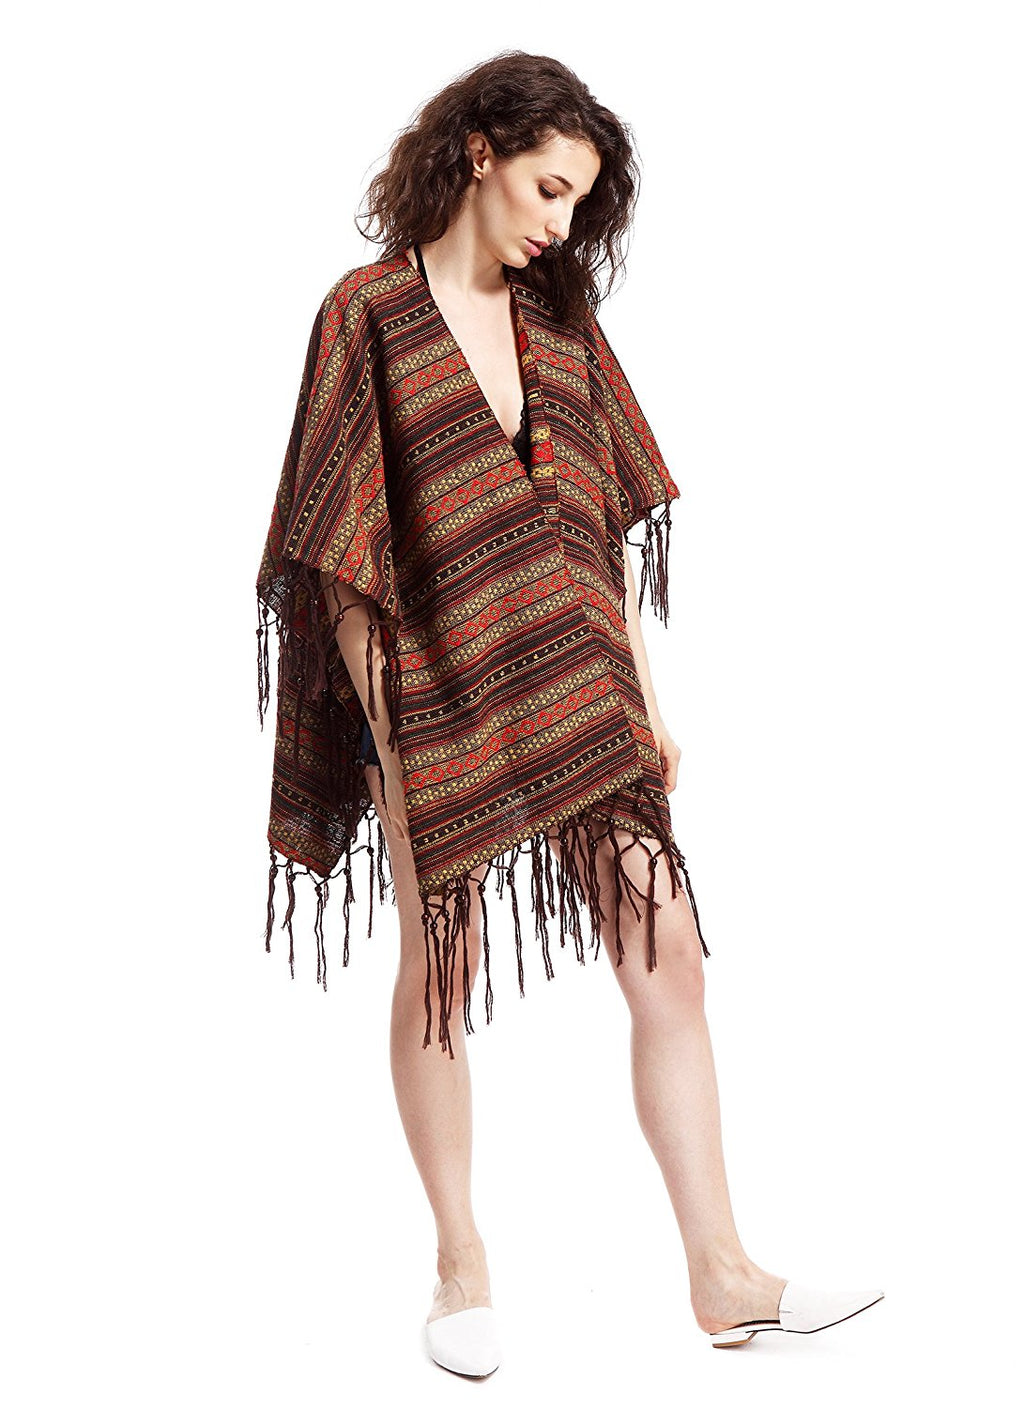 Woven Striped Poncho Cape Cardigan Wrap with Beaded Tassels